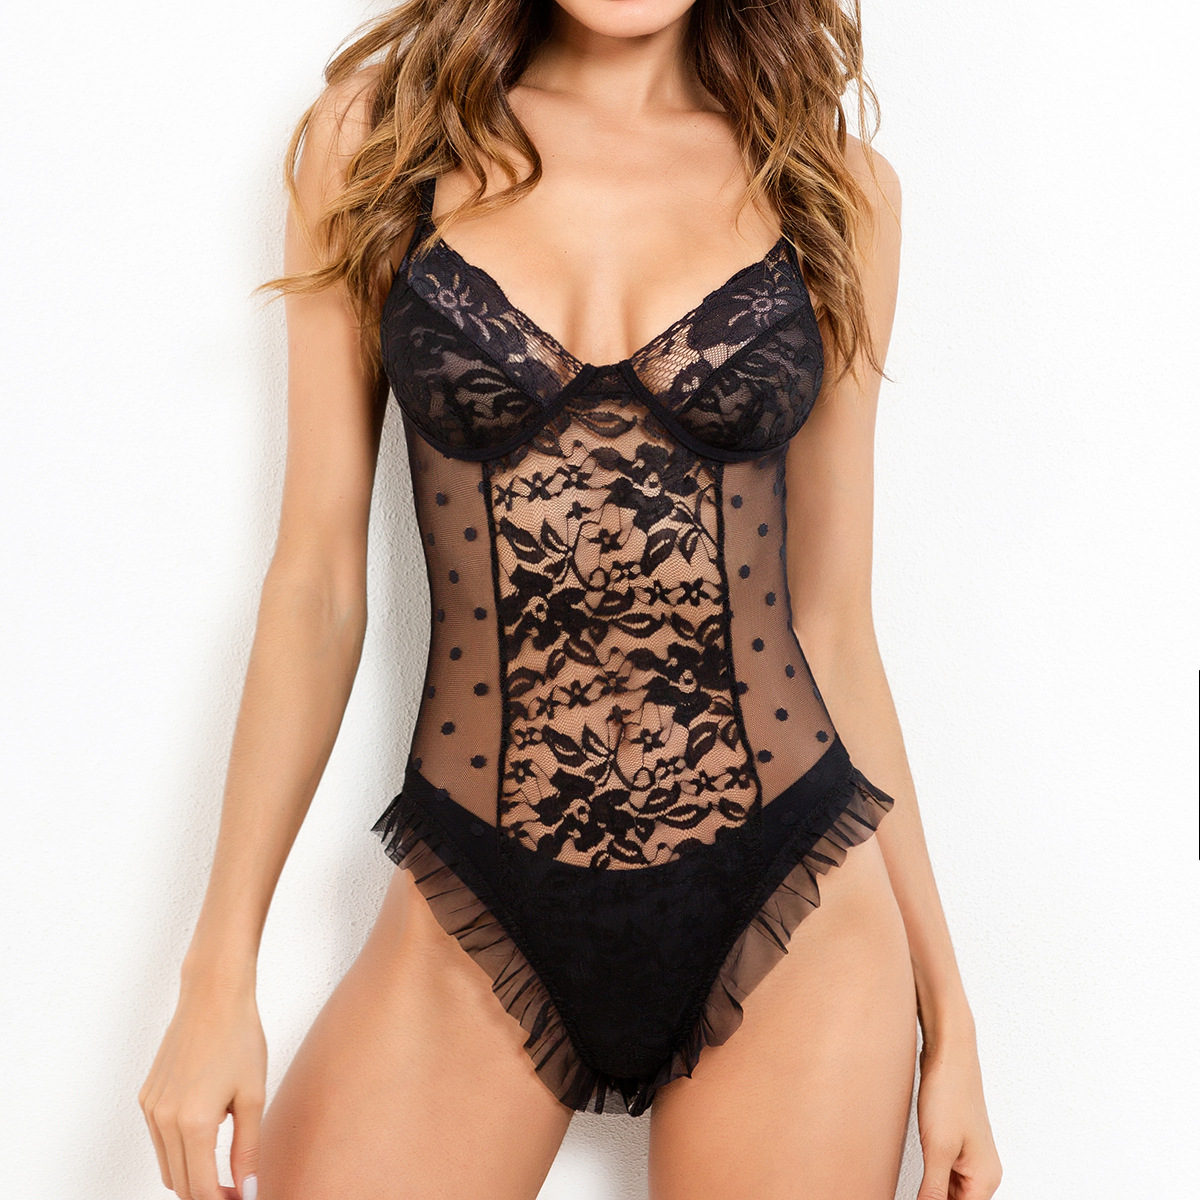 Black Mesh Sheer Transparent Lace Bodysuit Body Women Sleeveless Backless Bodycon Jumpsuit Sexy Bodysuits Combinaison Femme